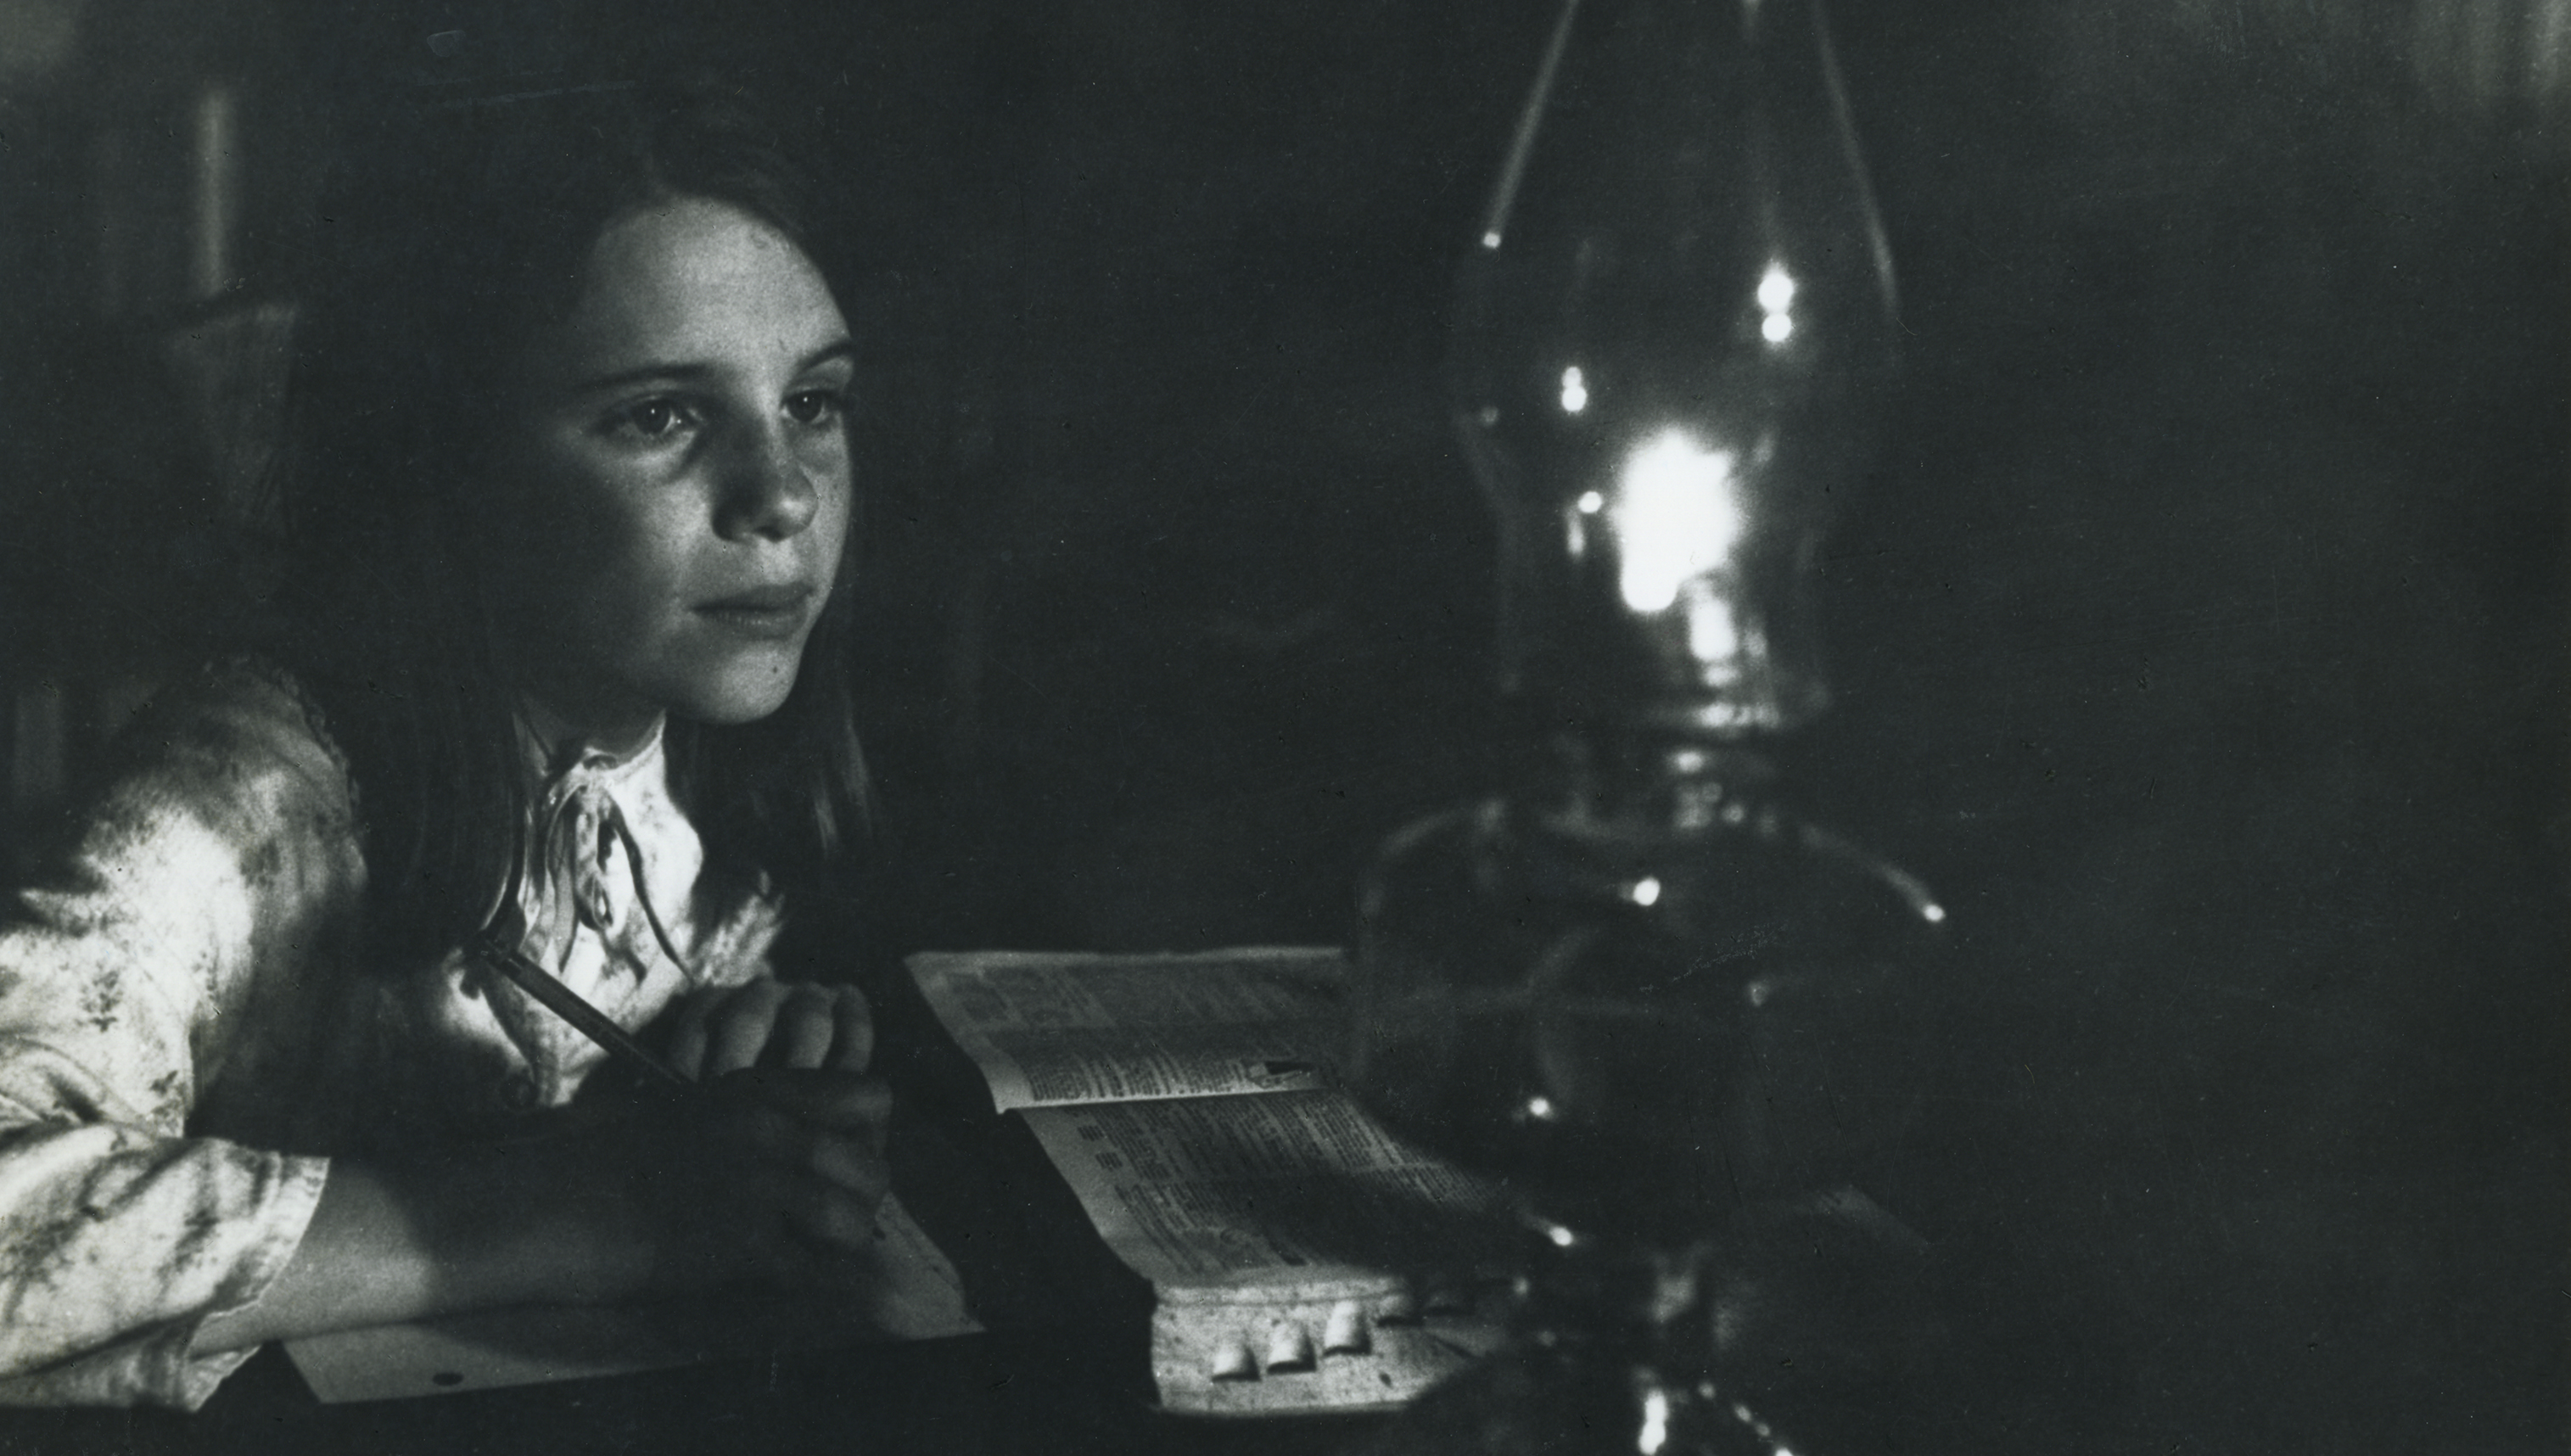 USDA.Girl.Oil.Lamp web.jpg